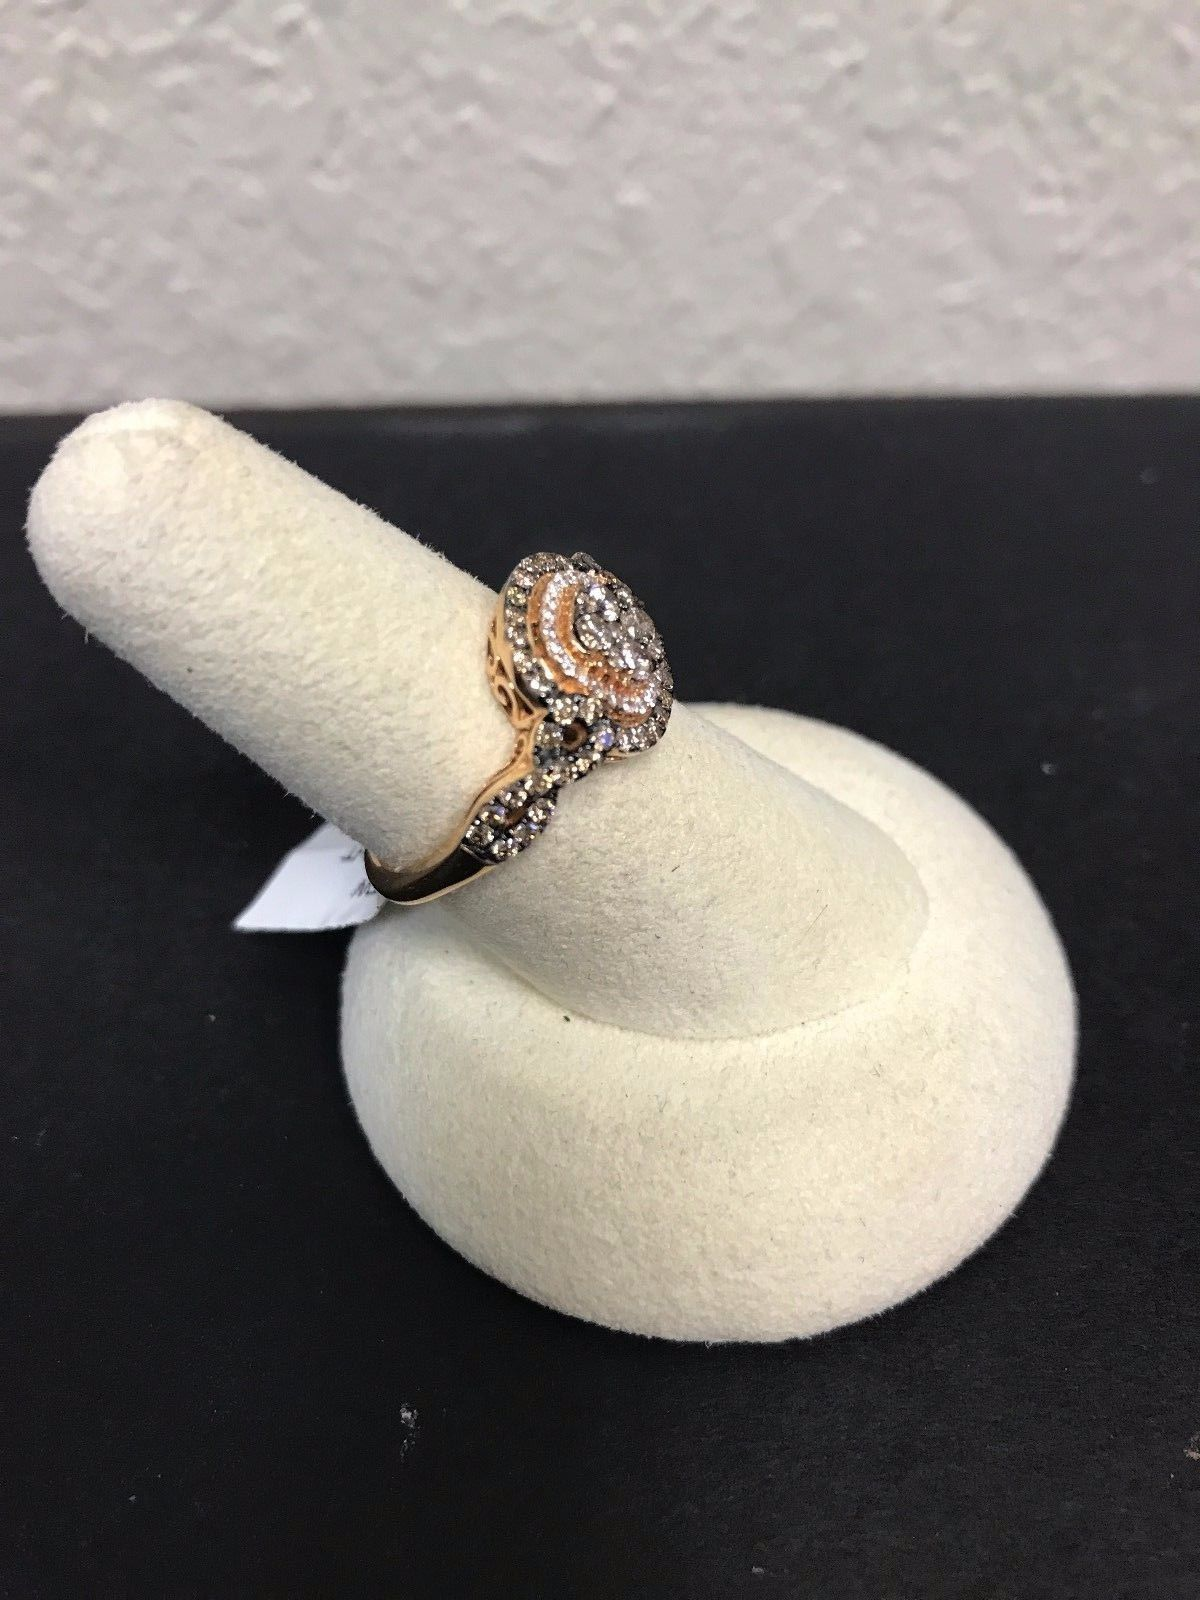 New Le Vian  YQGH 101 14kt  Rose Gold  Diamond Ring From Chocolatier Collection